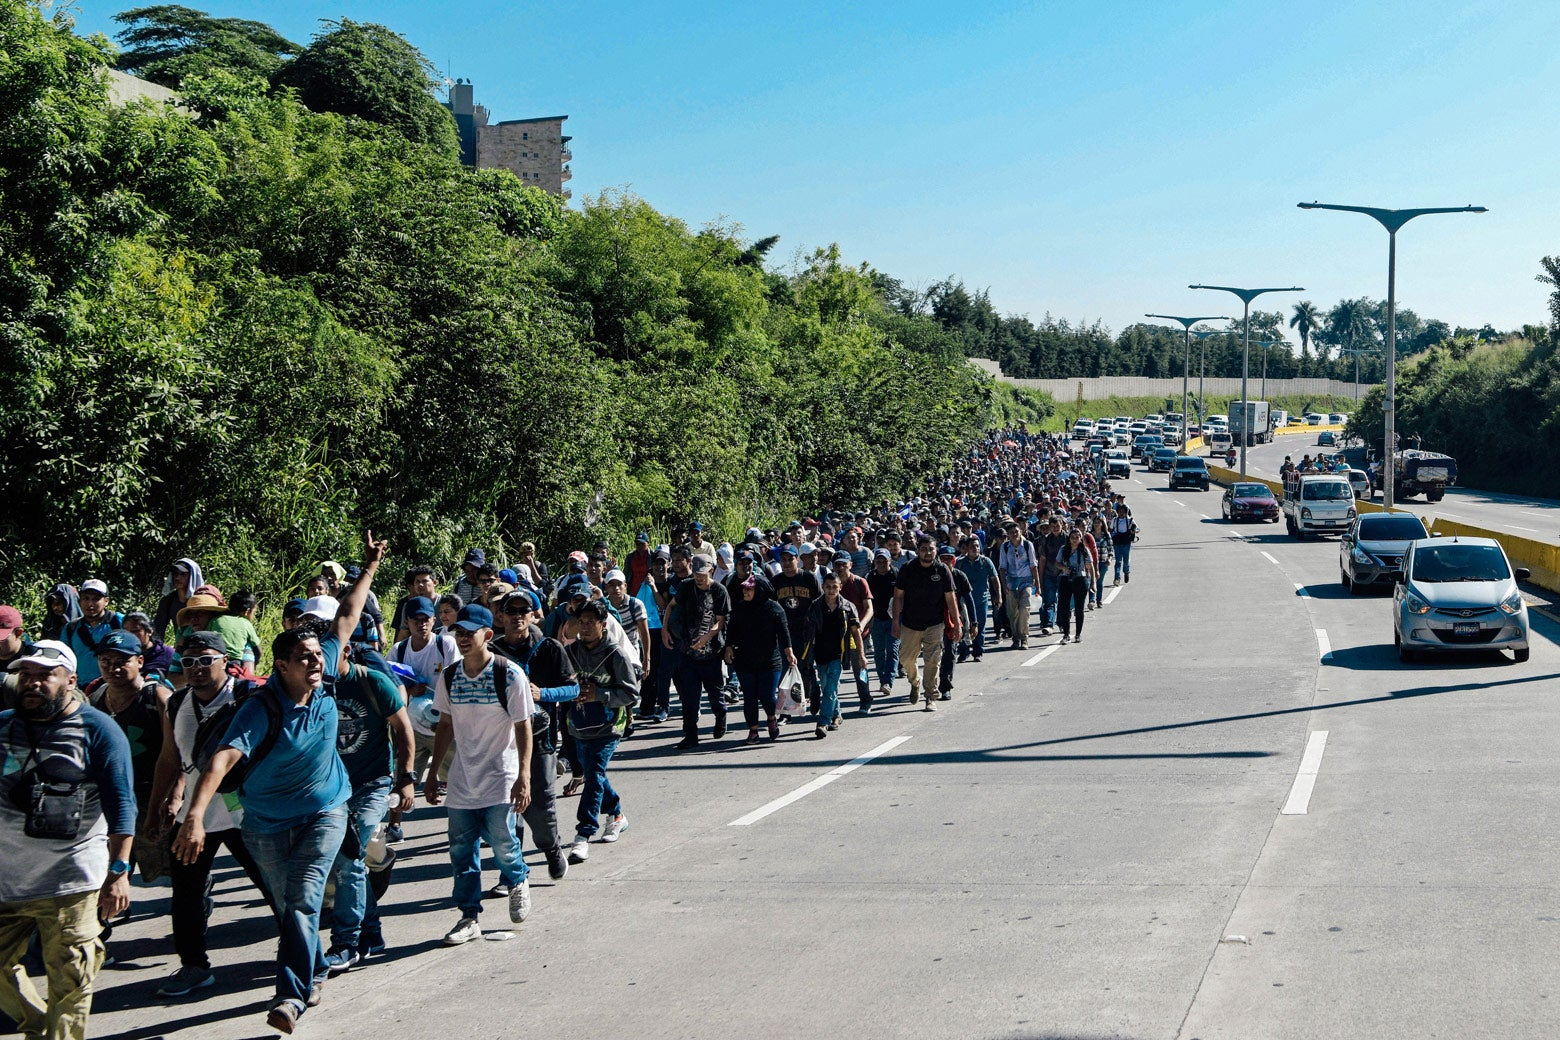 A group of migrants takes up one lane of a highway.